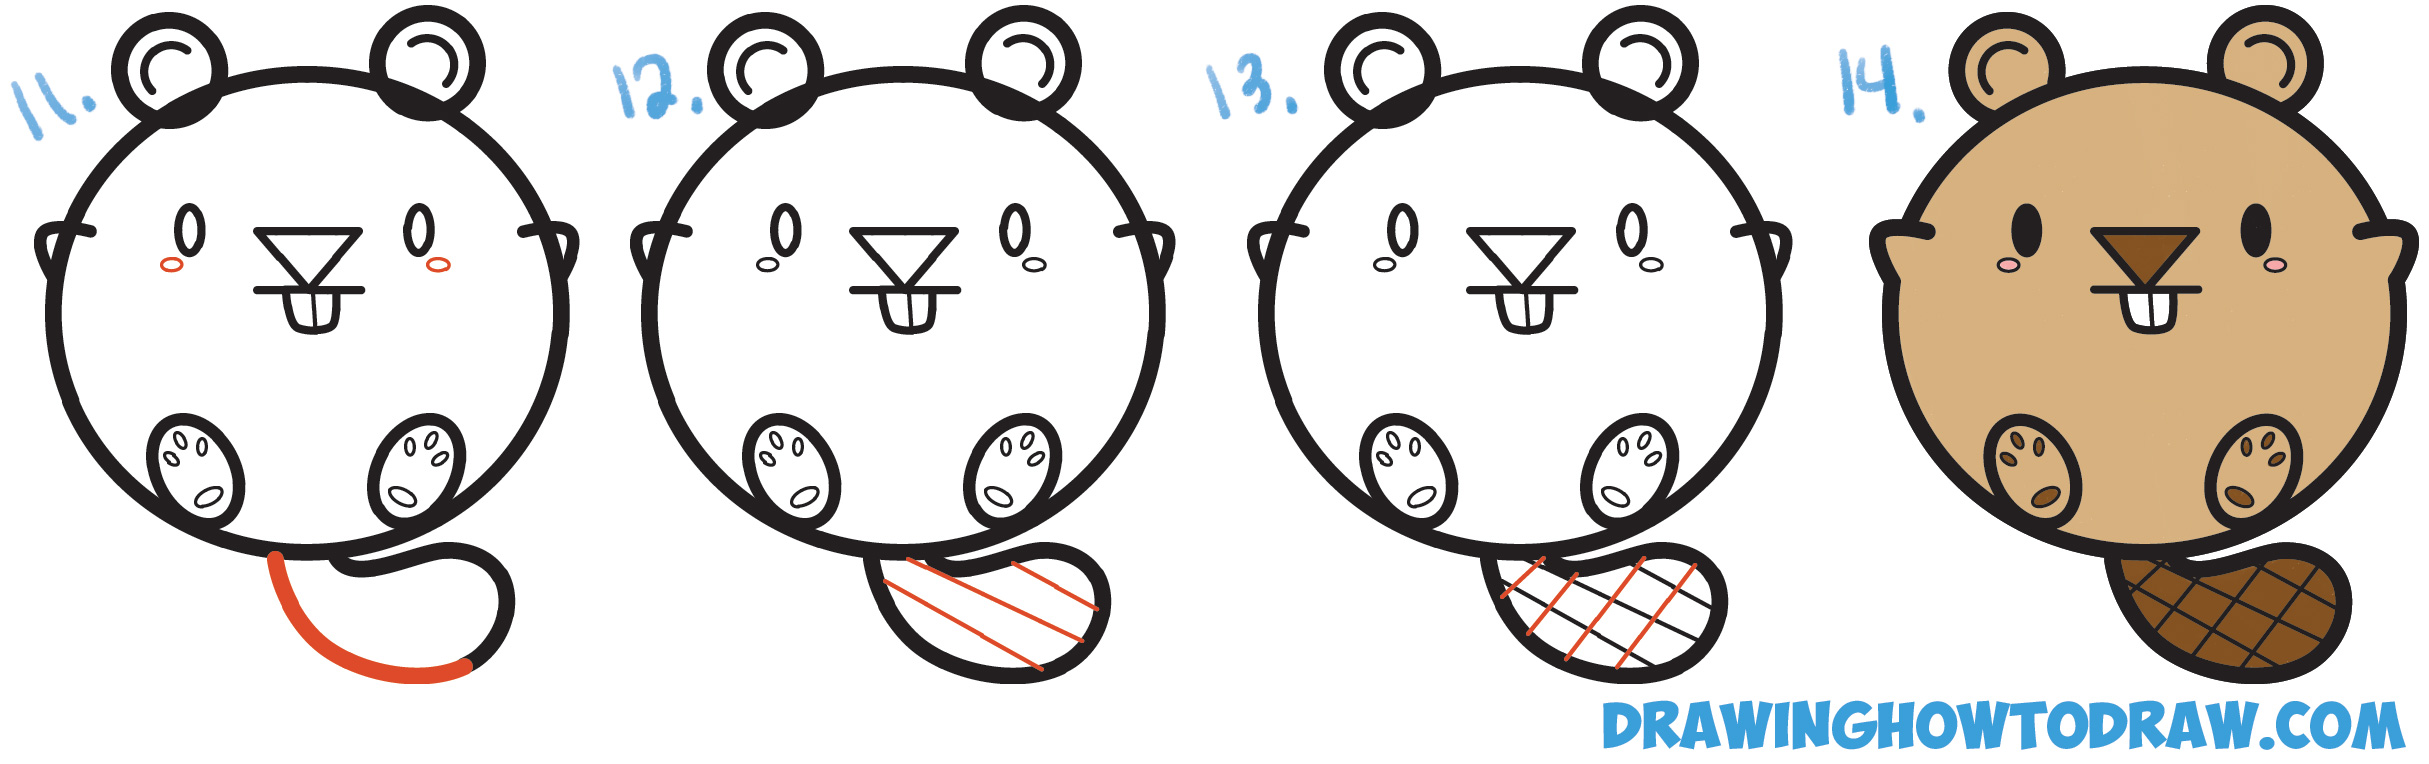 How to Draw a Cute Kawaii Cartoon Beaver with Letters Simple Steps Drawing Lesson for Kids and Beginners